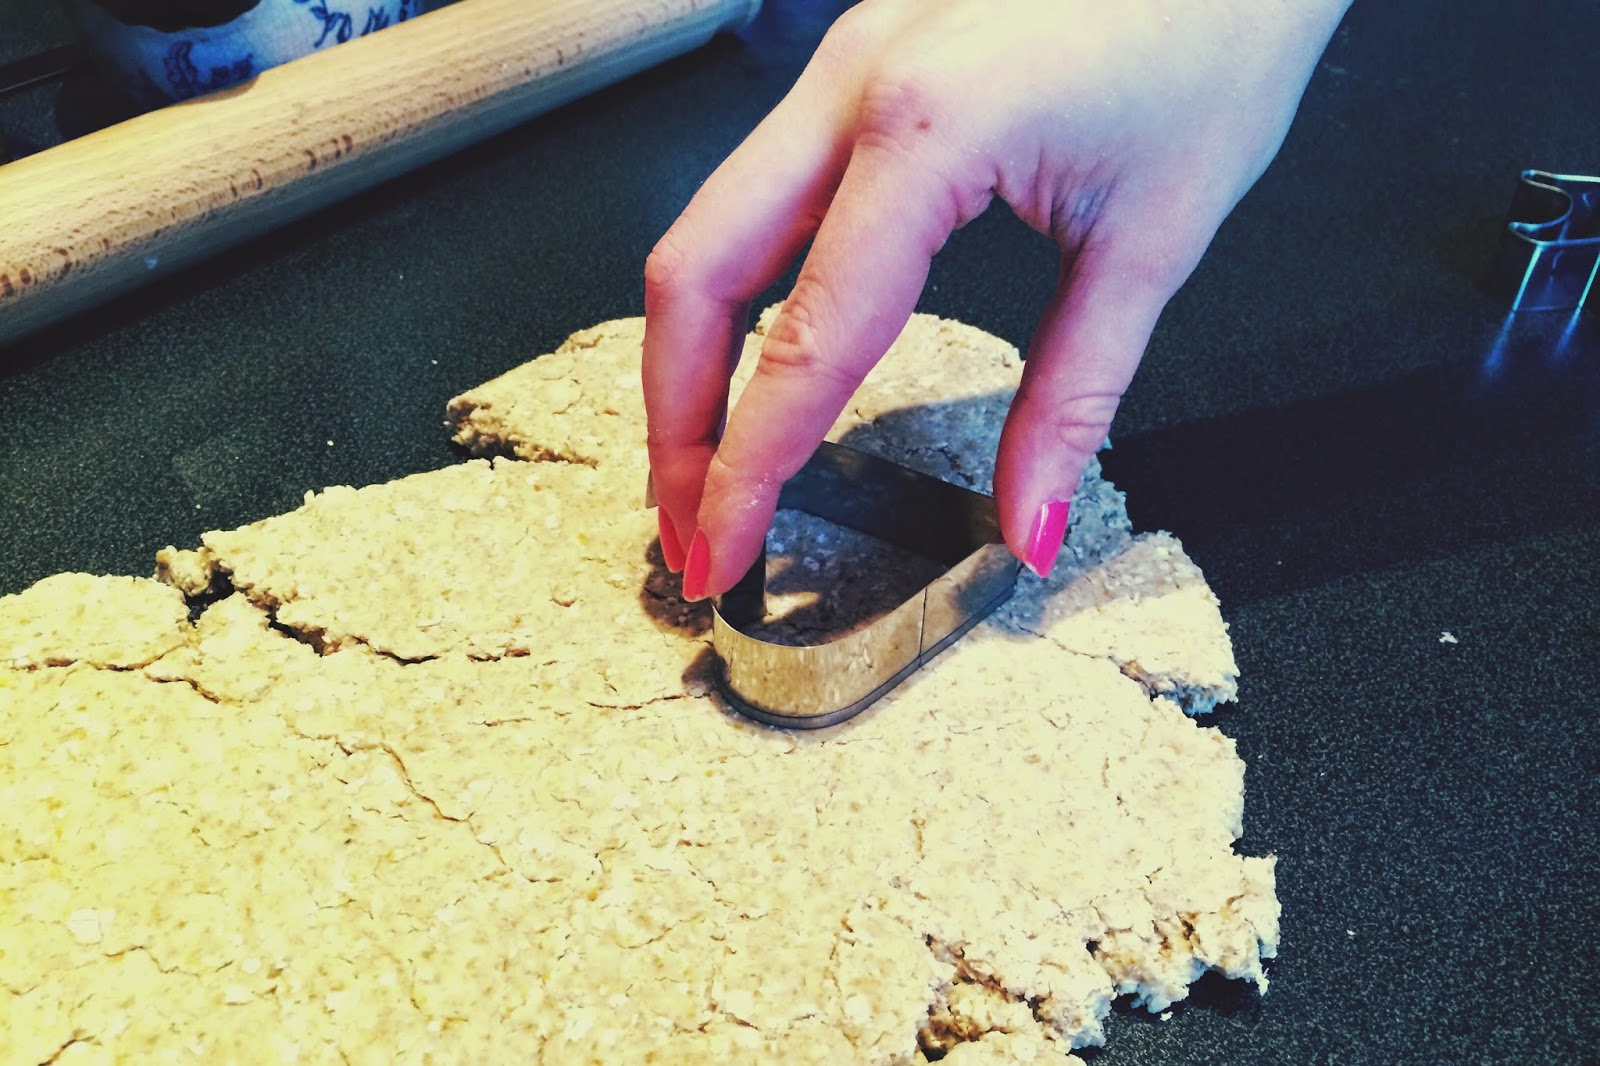 FashionFake, lifestyle bloggers, UK lifestyle blog, homemade dog biscuits, how do I make dog biscuits, pet blog